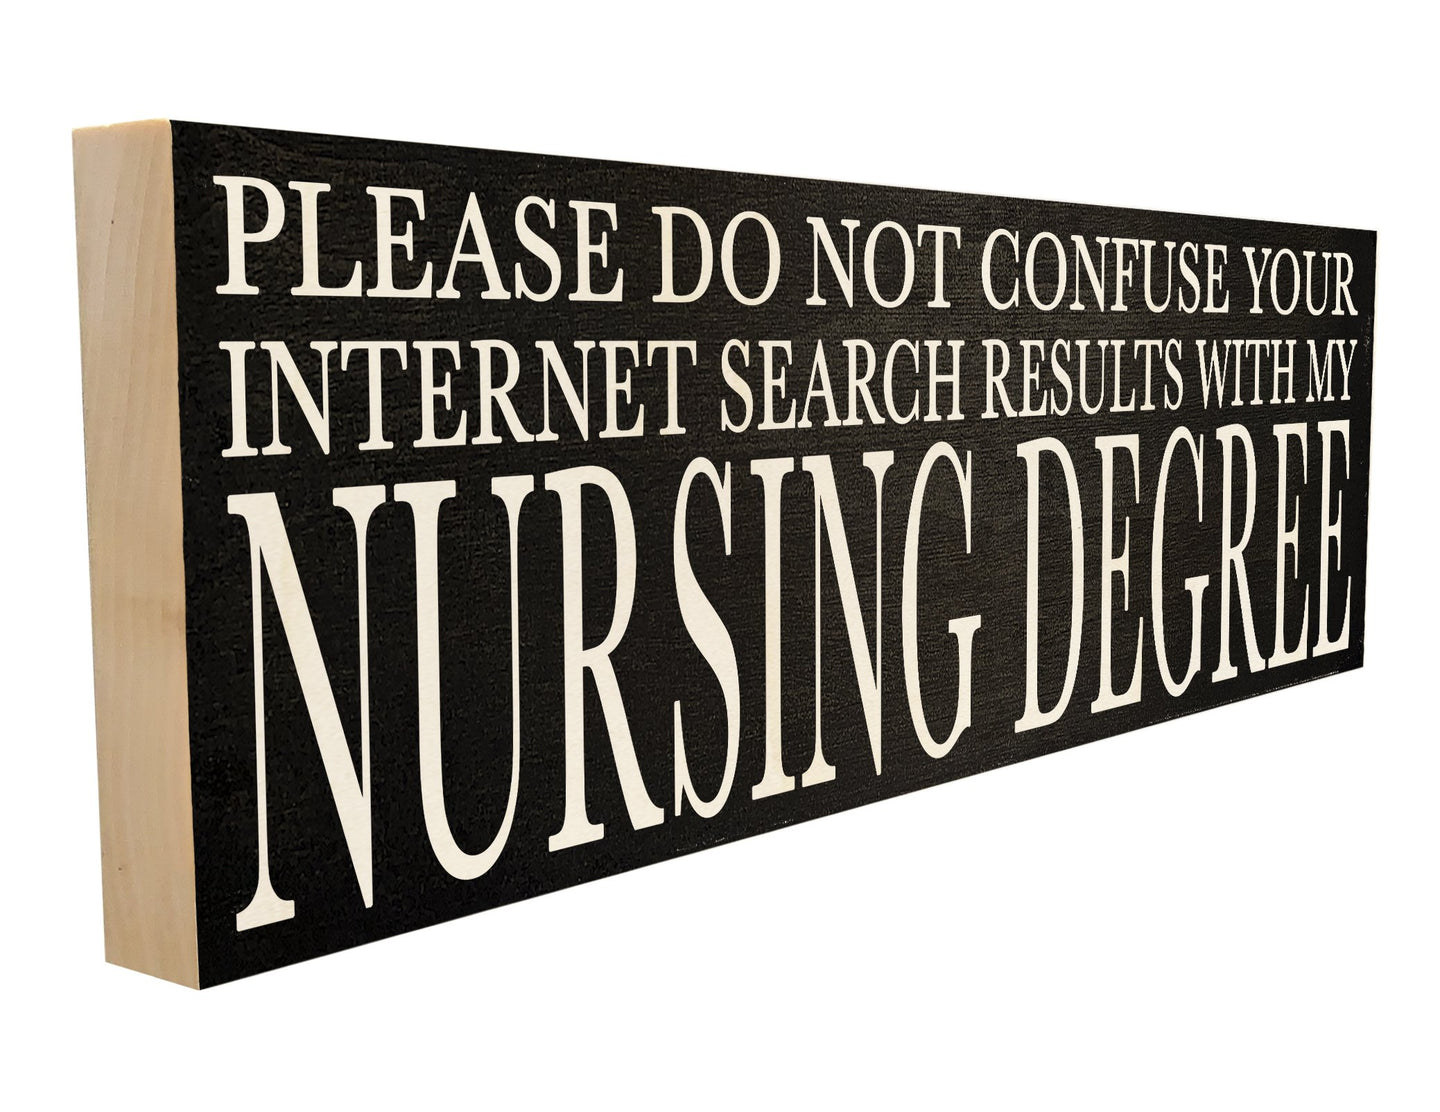 Please Do Not Confuse Your Internet Search with My Nursing Degree.